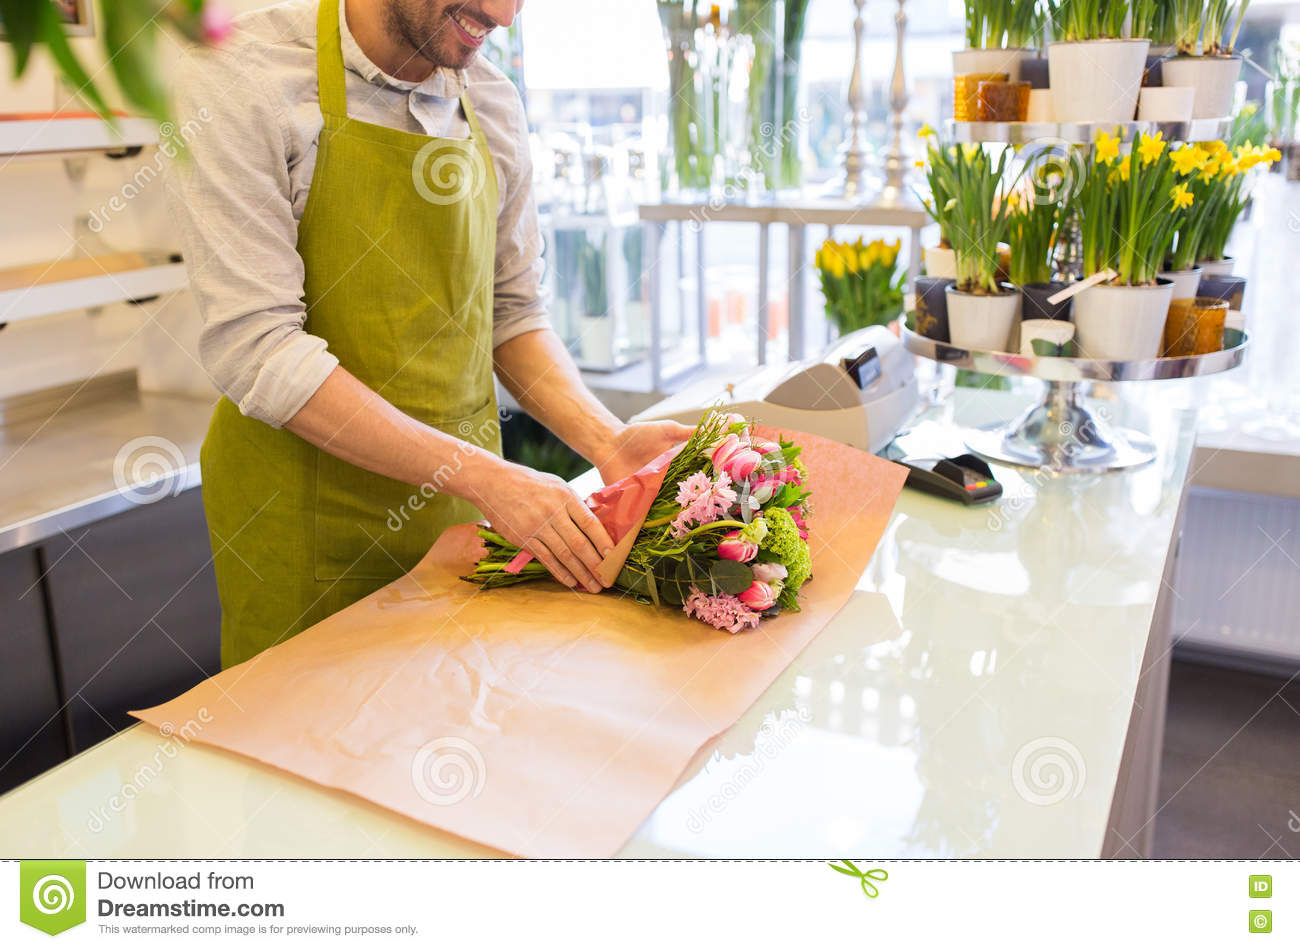 Florist wrapping flowers in paper at flower shop stock image image florist wrapping flowers in paper at flower shop mightylinksfo